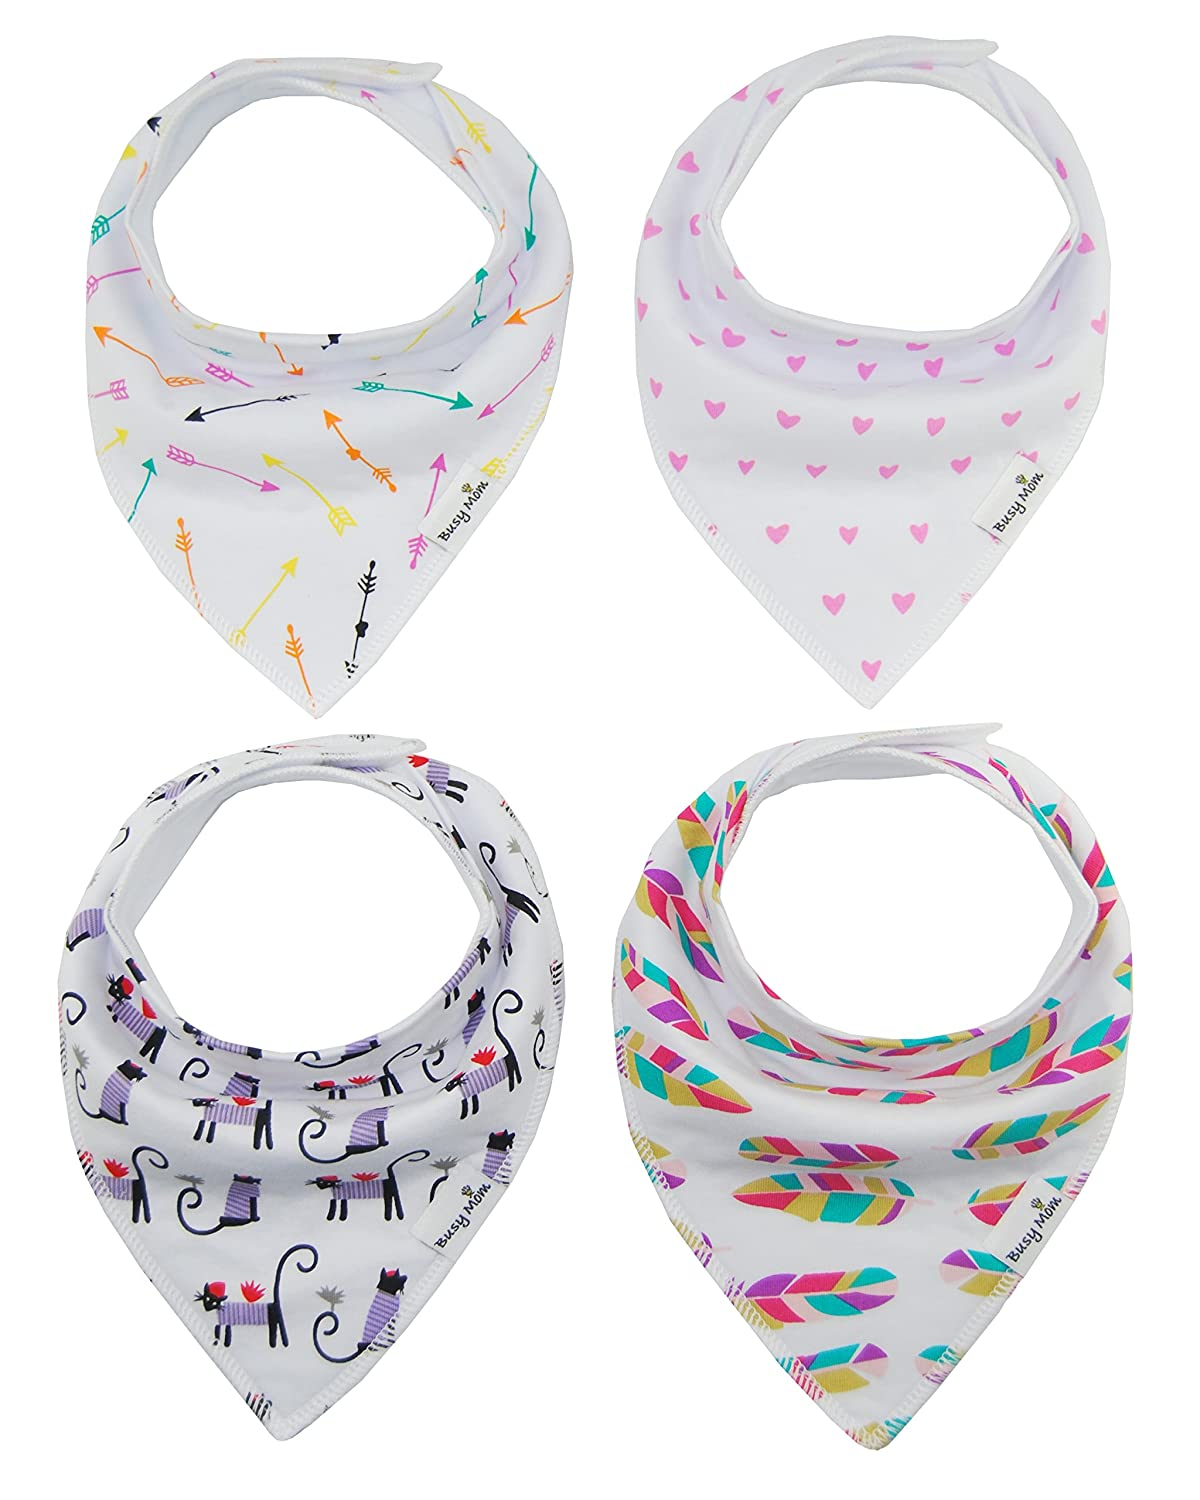 4-Pack Unisex Baby Toddlers Bandana Drool Bibs with Snaps 100% Soft Organic Cotton Unique Shower Gift Set Super Absorbent for Teething Feeding Fashion Adjustable (AA) MY004AA-1